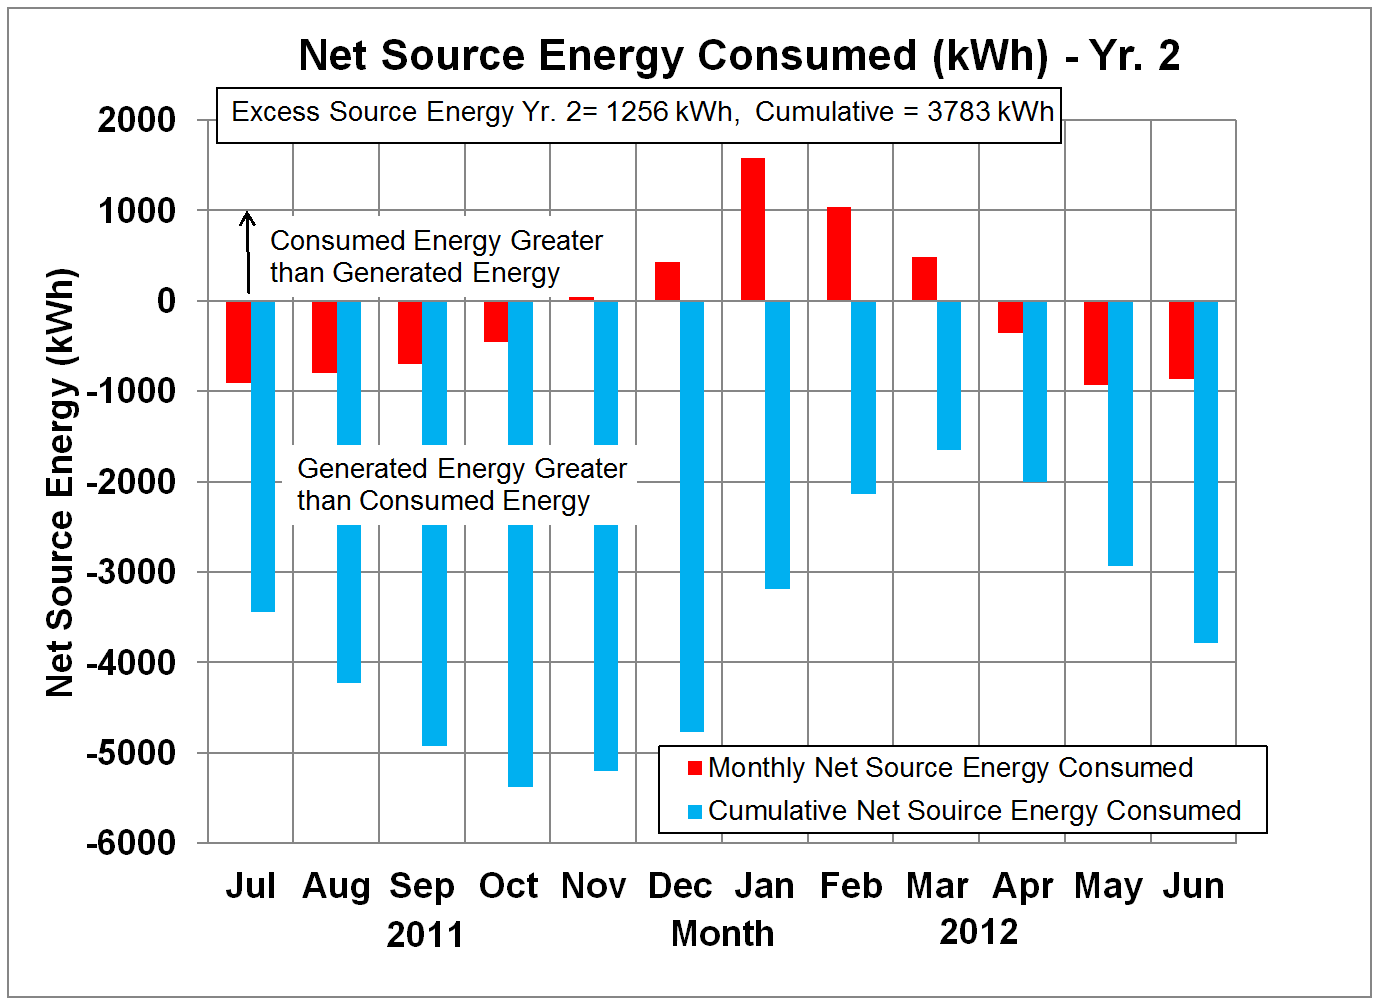 Net Source Energy in kWh - Yr. 2